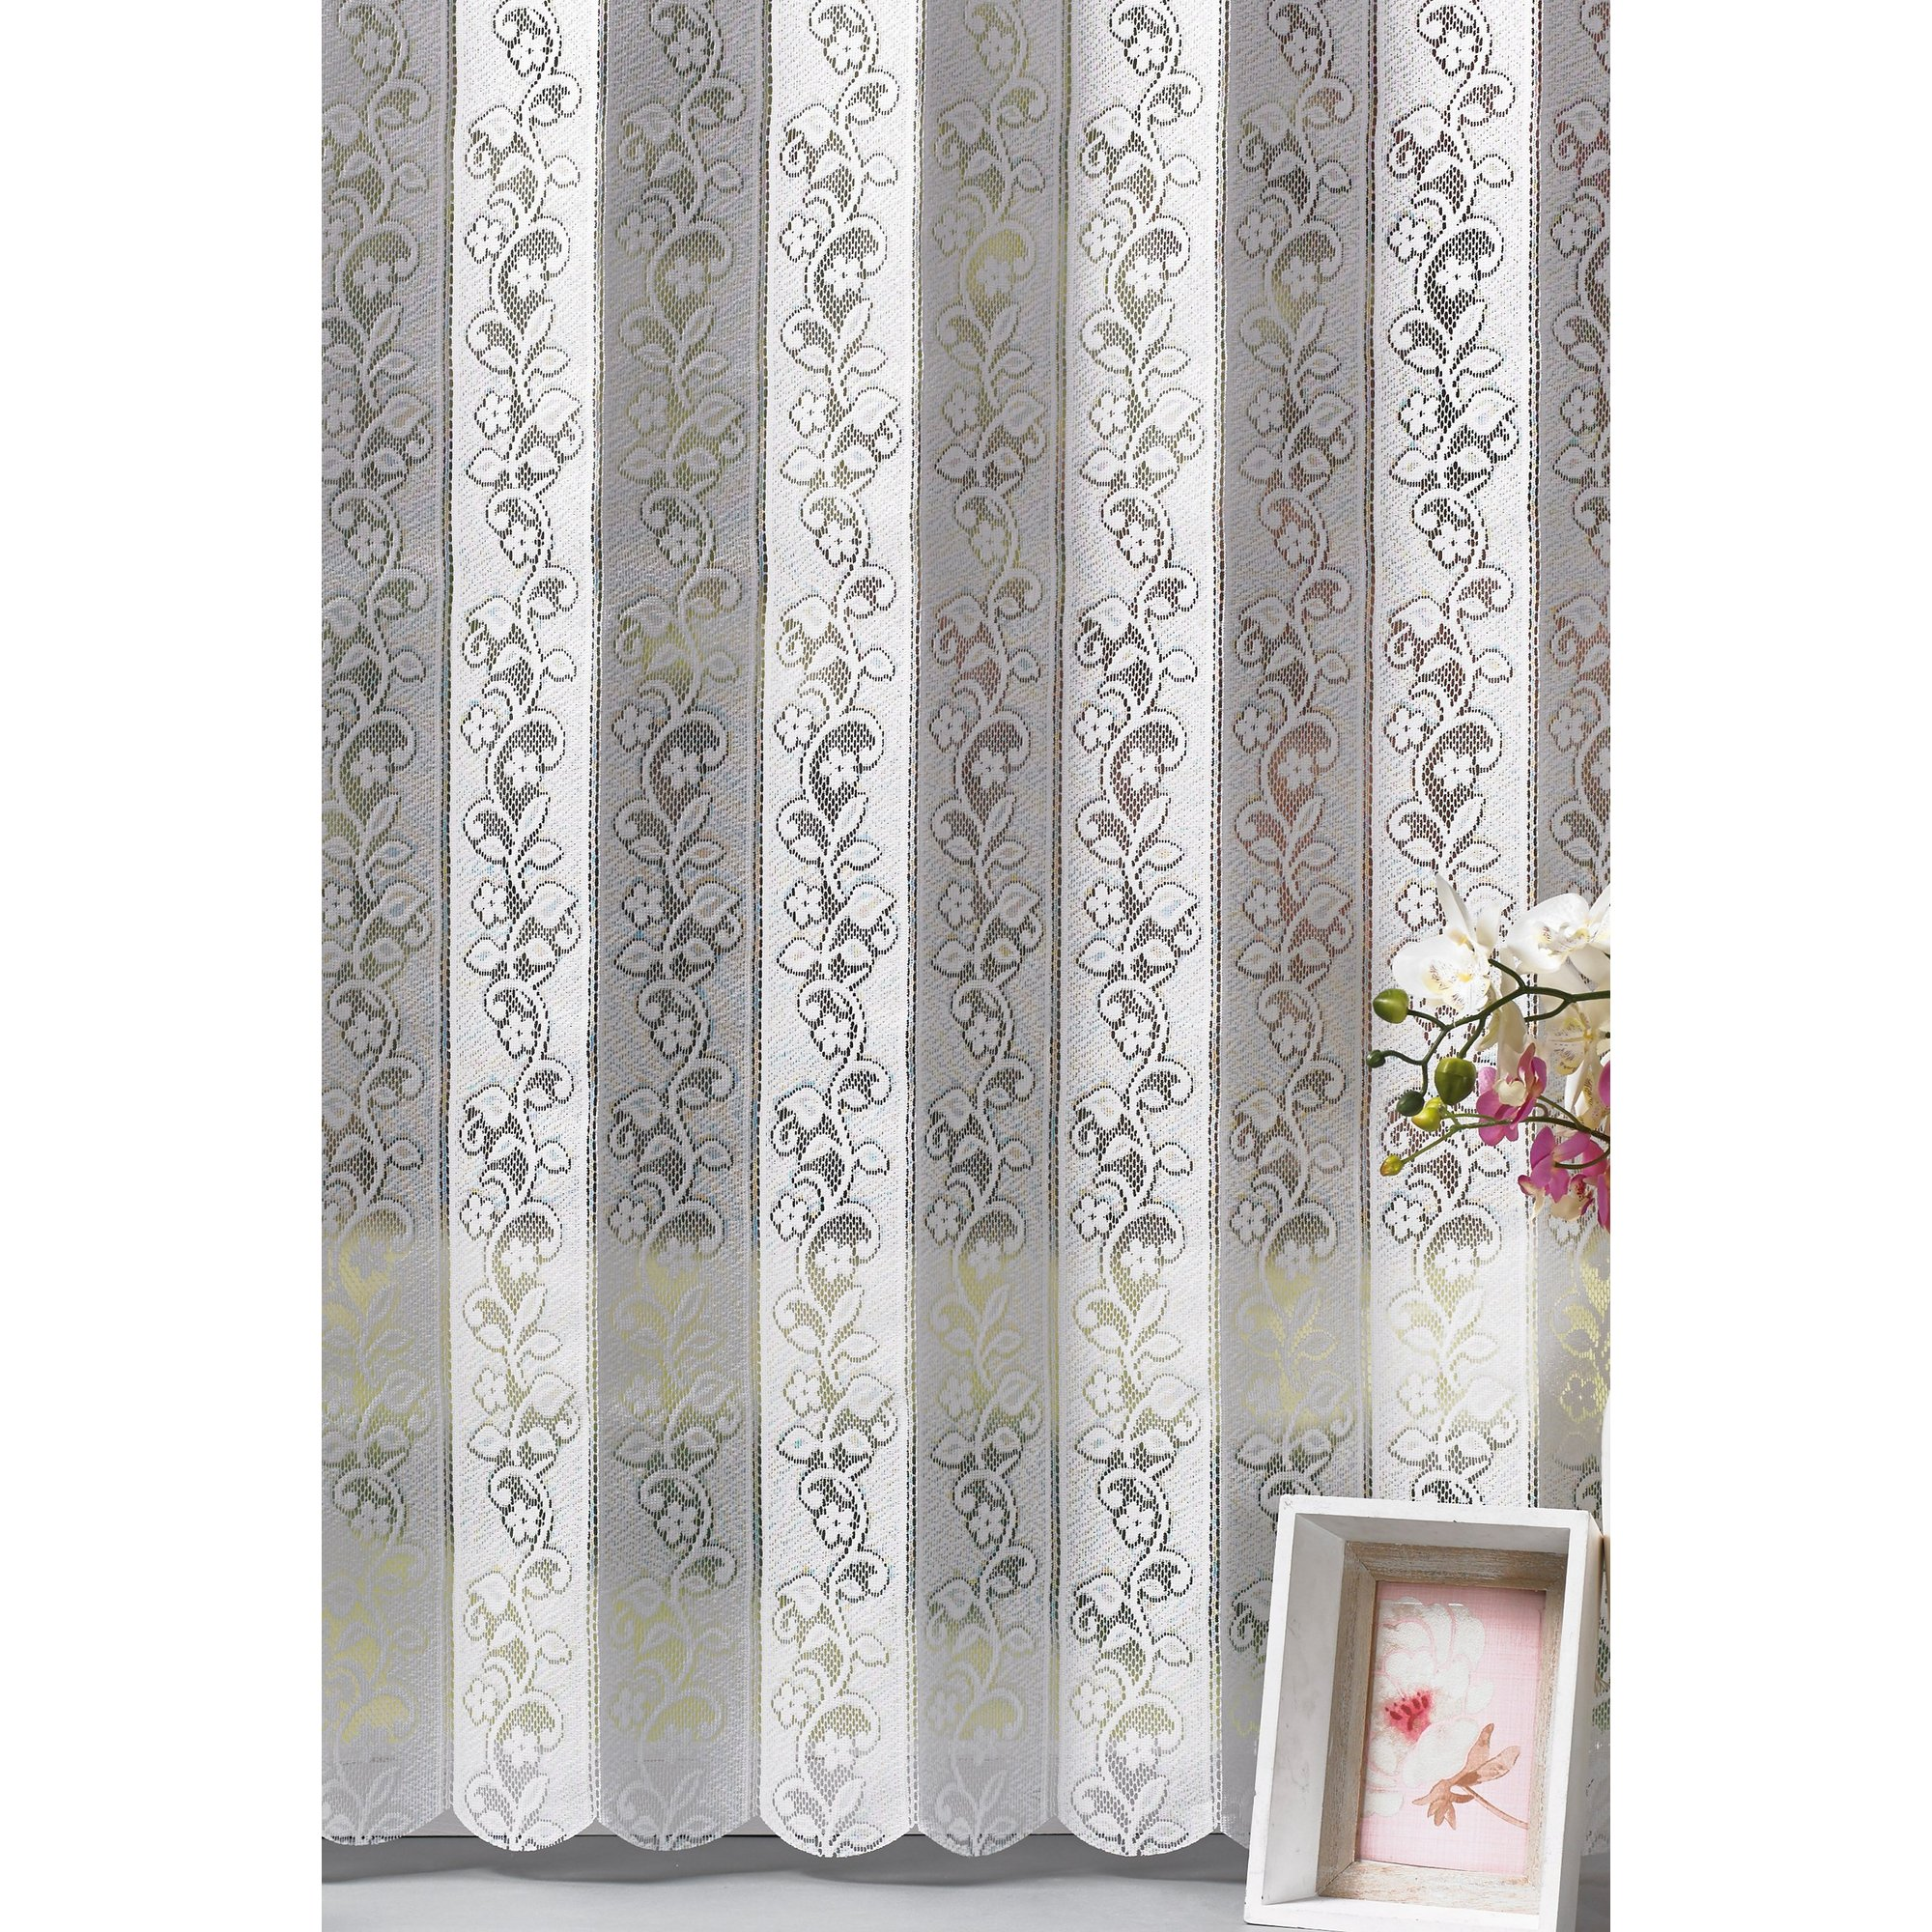 Image of Daisy Easy Fit Louvre Style Blind